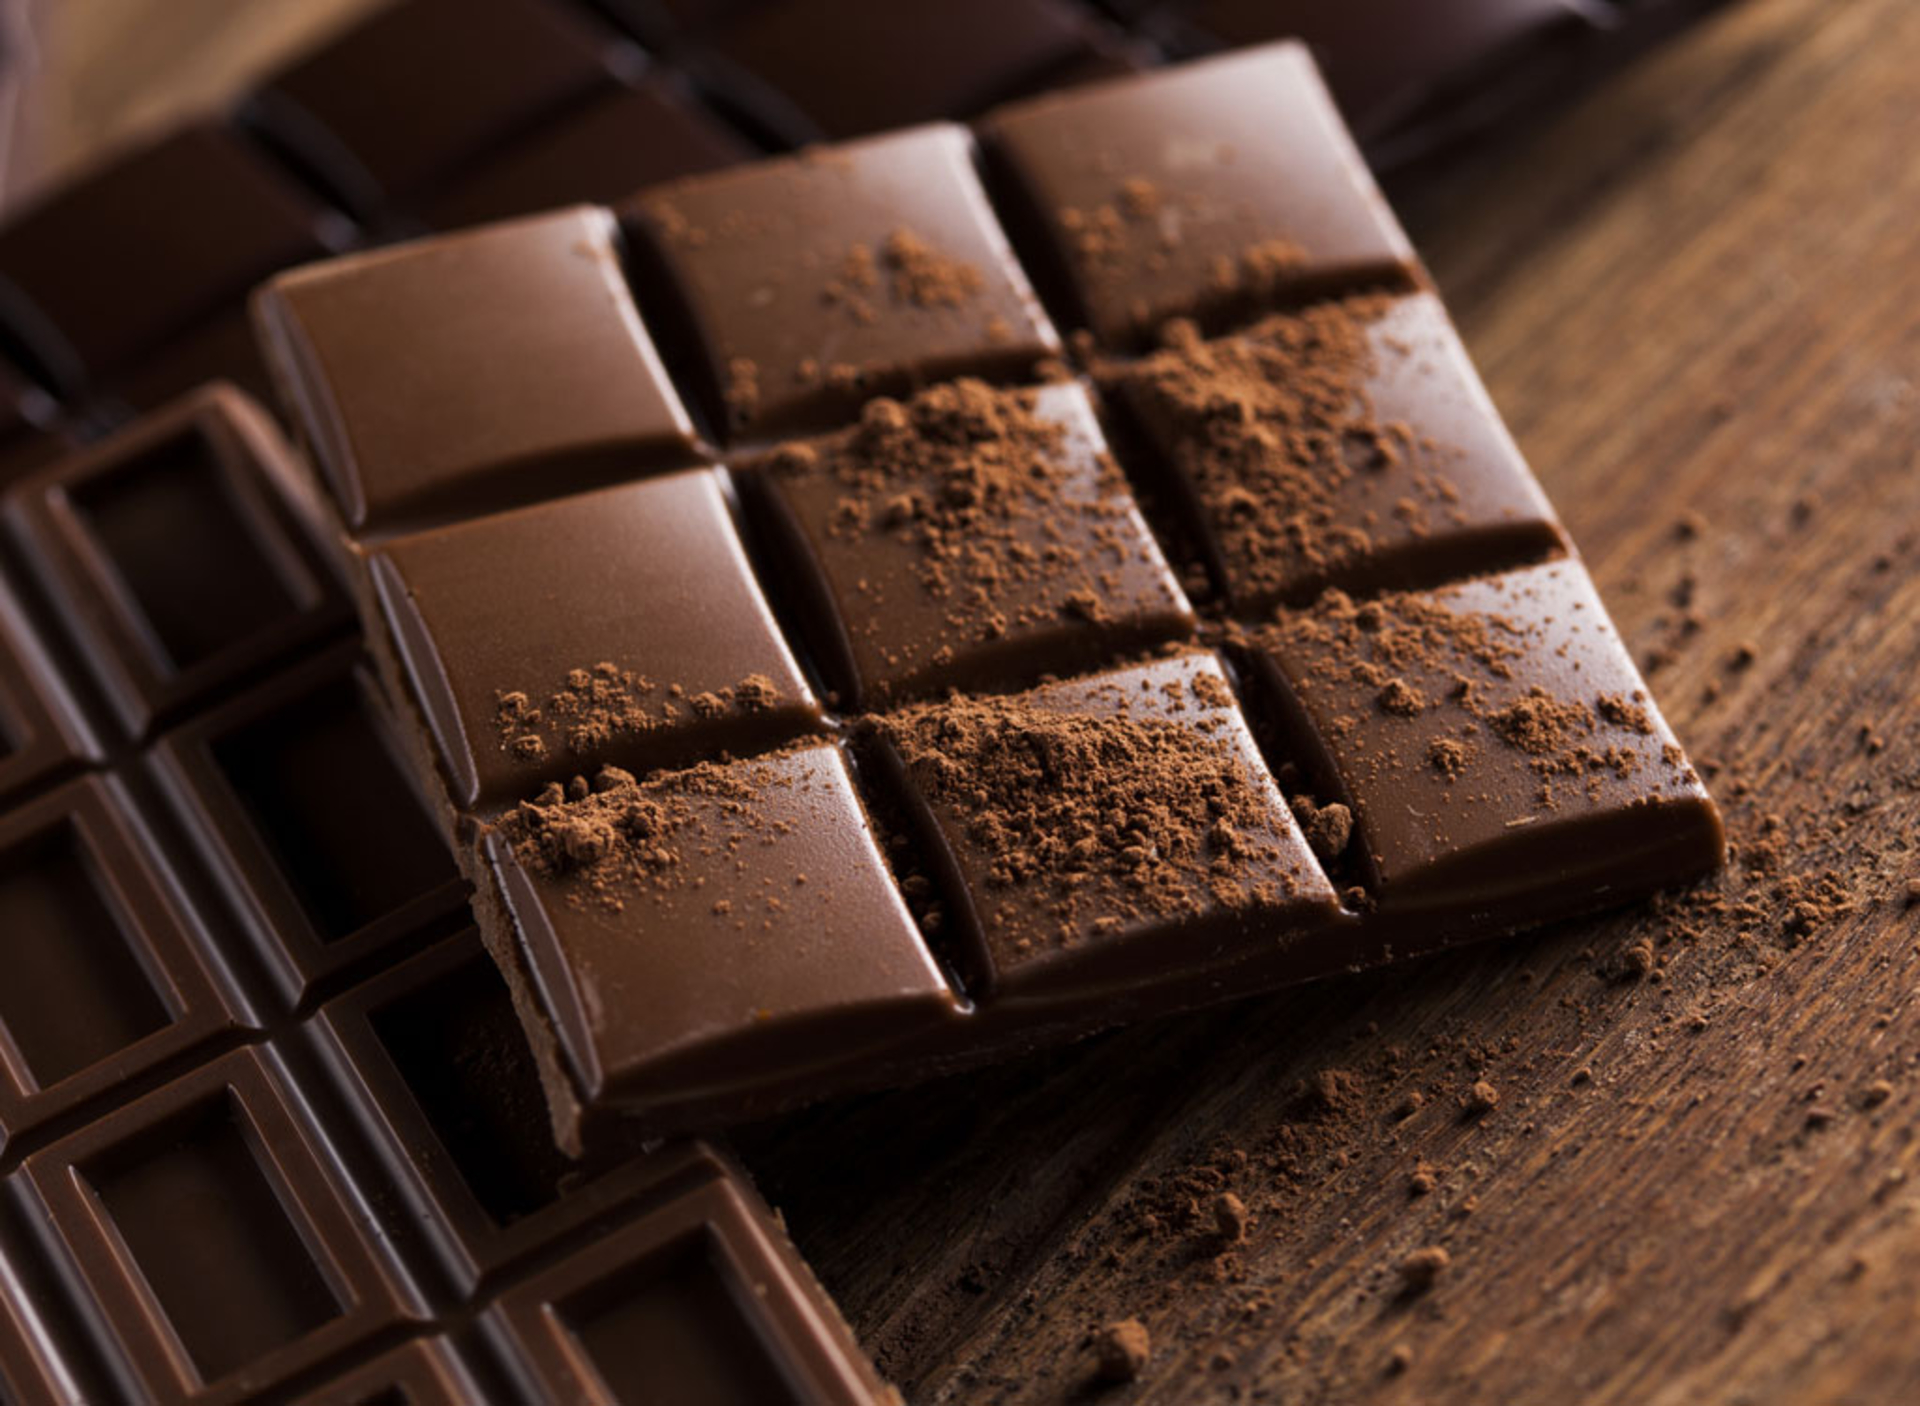 _Girlinskinnyfit_ - dark-chocolate-bar-squares